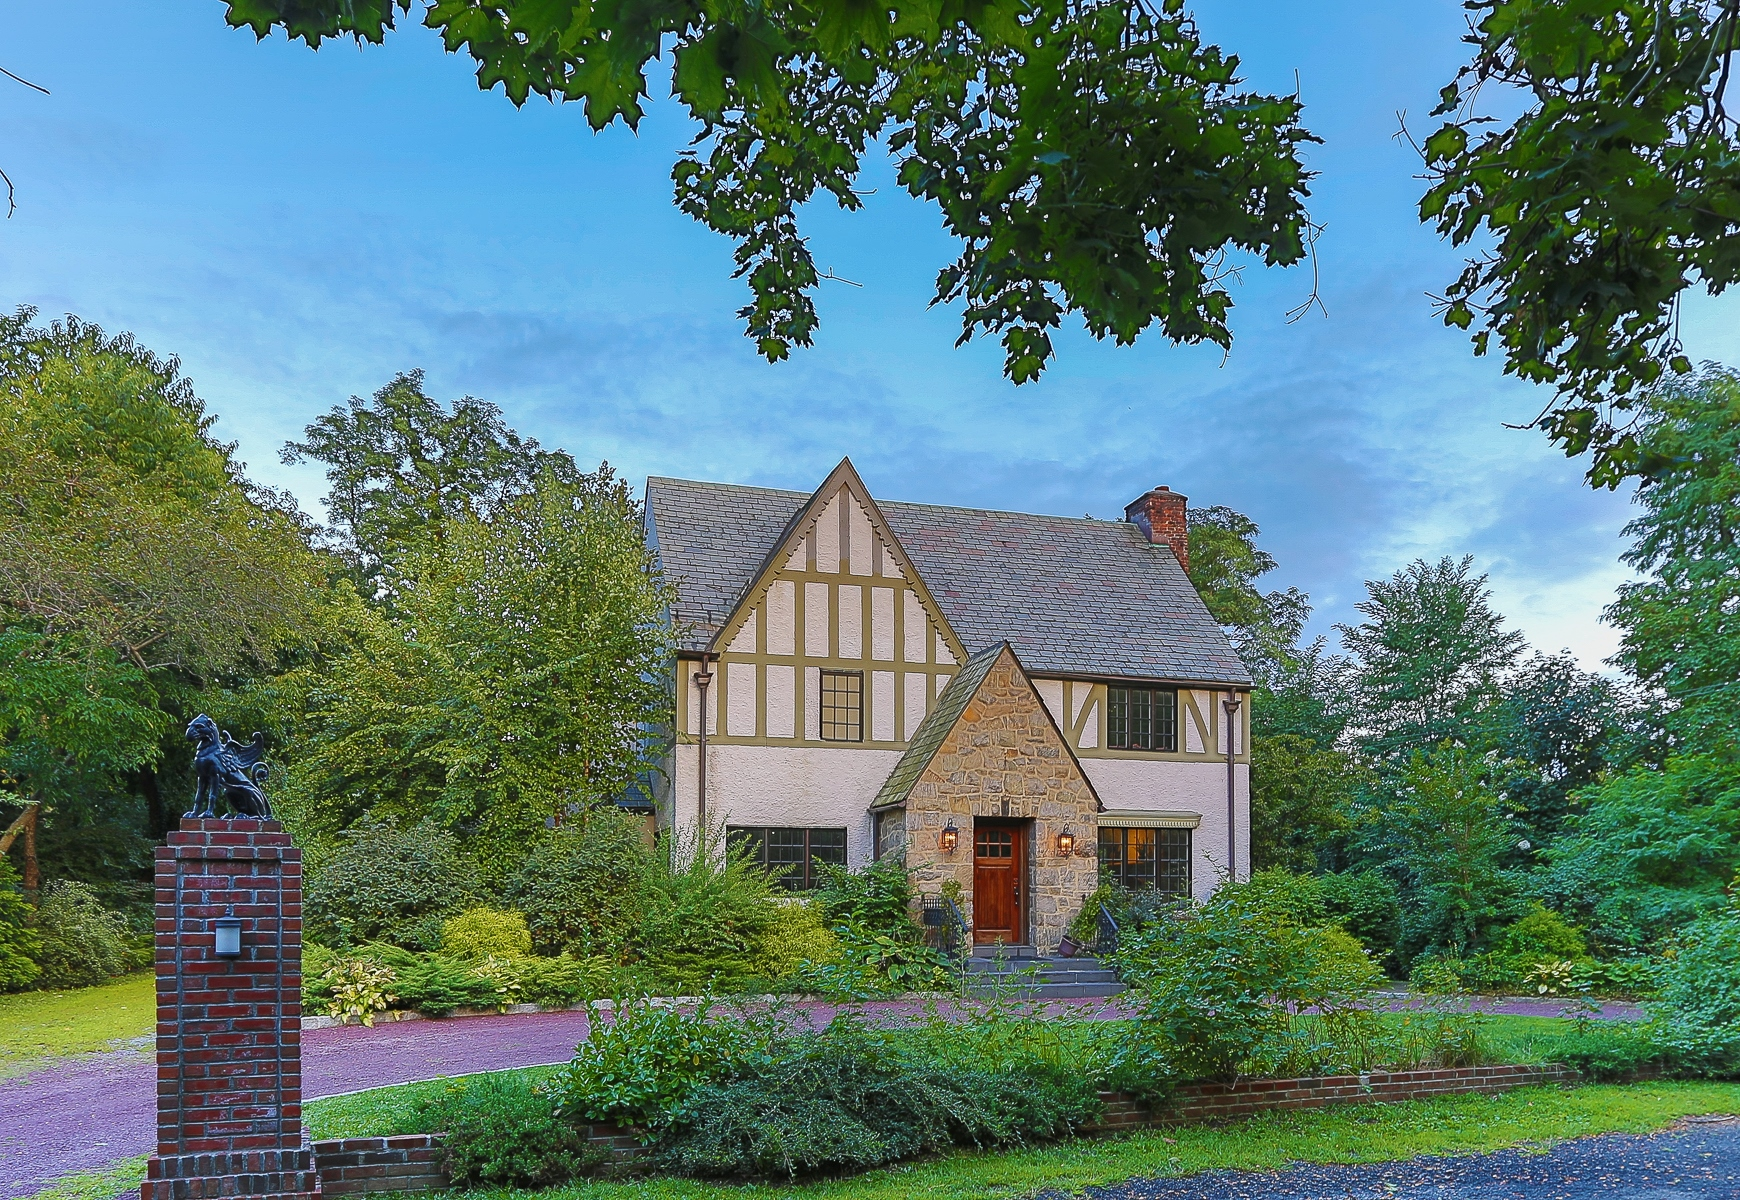 Single Family Home for Sale at Restored 5 BR Stone & Stucco Tudor on 12 Acre 5022 Arlington Avenue Riverdale, New York, 10471 United States